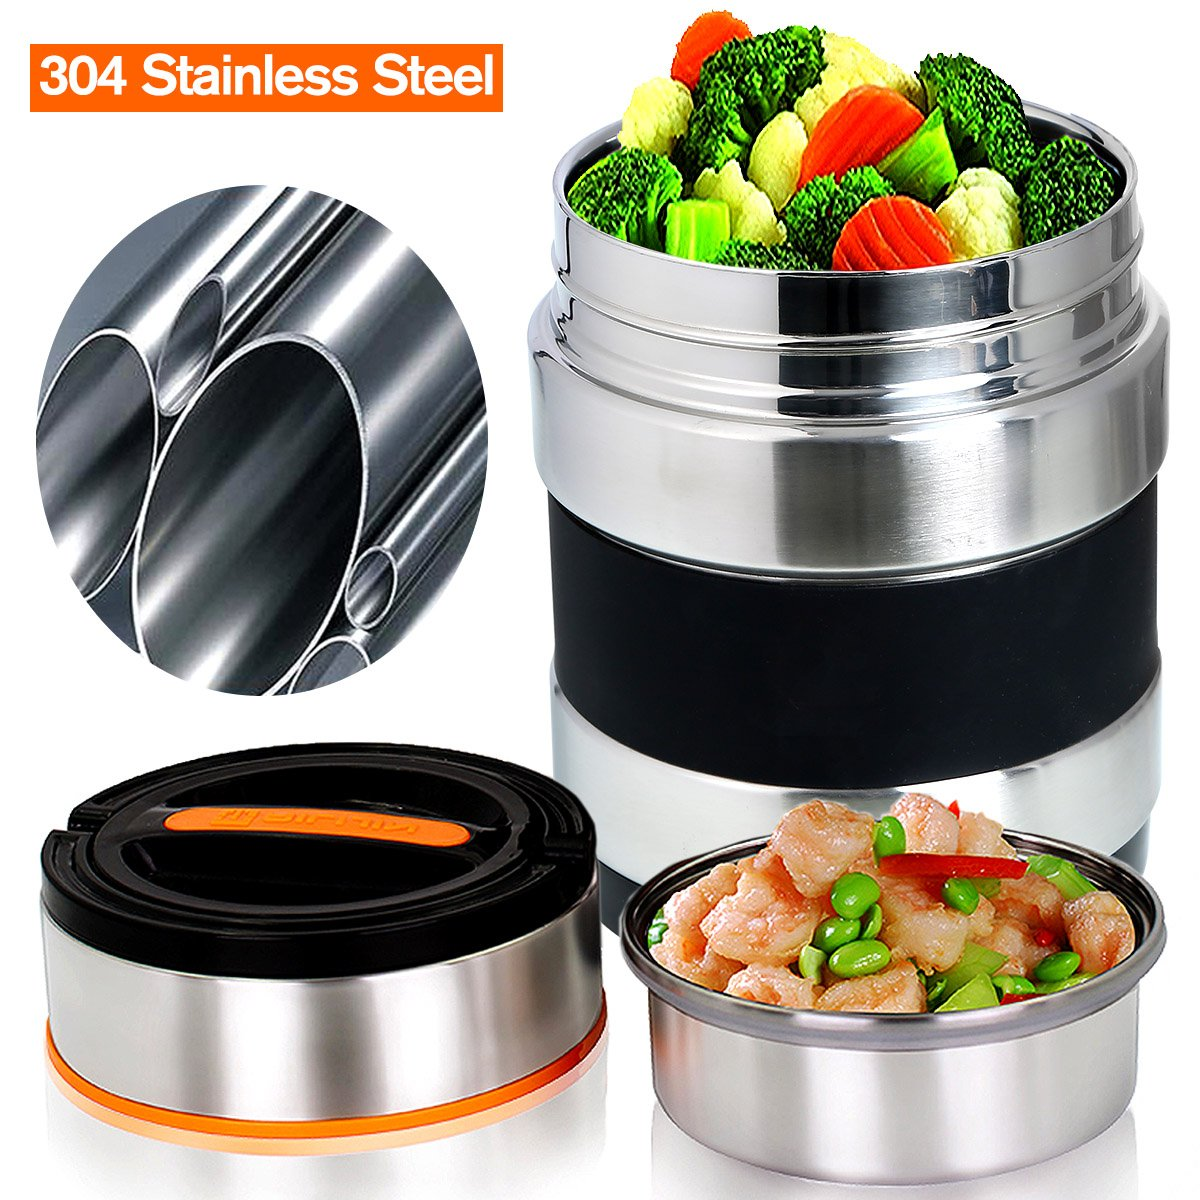 vacuum insulated lunch box keep food warm lunch containers stainless steel bento ebay. Black Bedroom Furniture Sets. Home Design Ideas